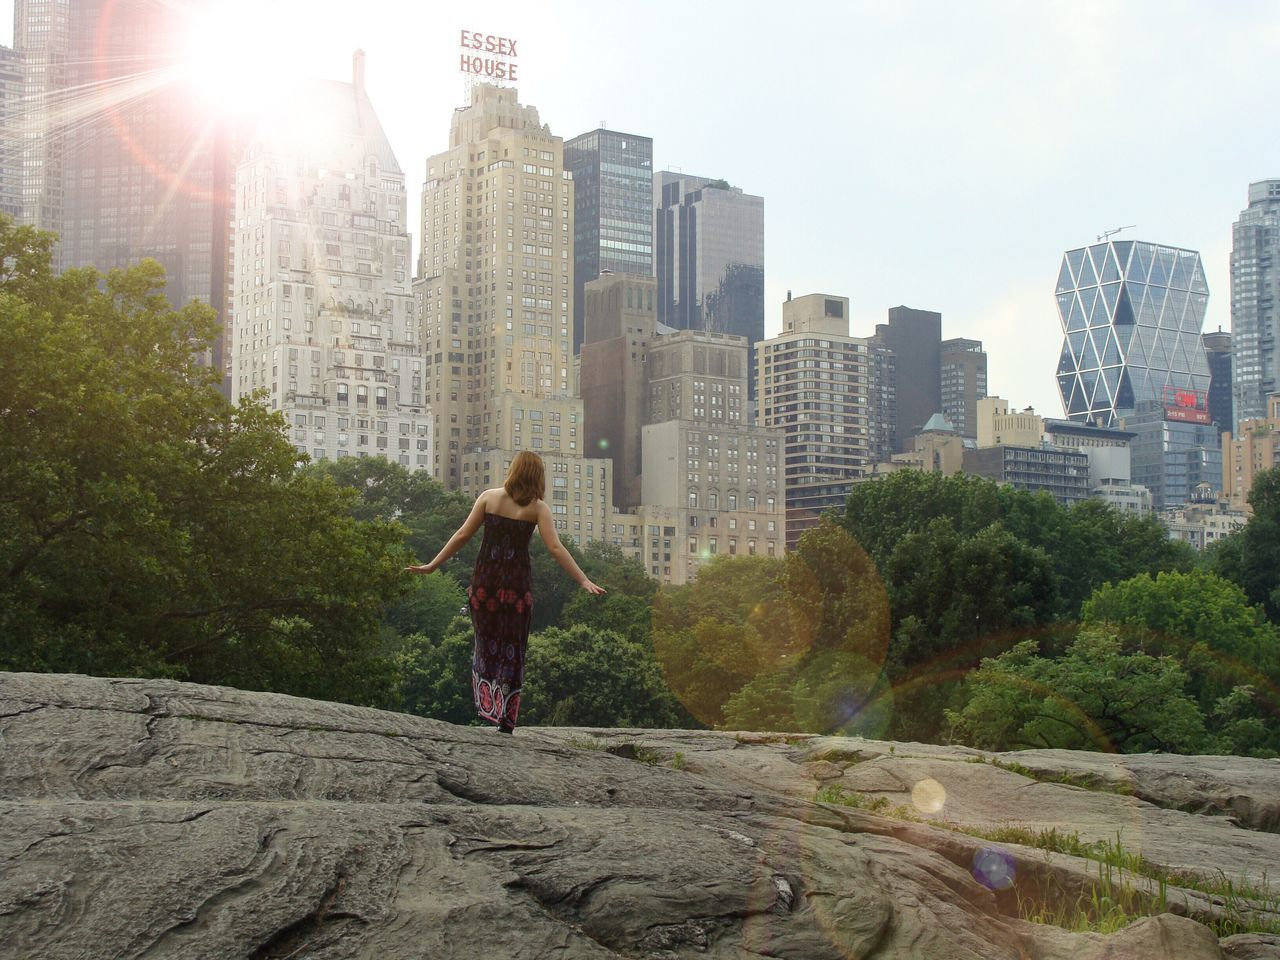 The girl in Central Park building exterior Architecture built structure lens flare one person day City Tree real people Standing outdoors sky Sunlight only women Adapted to the City